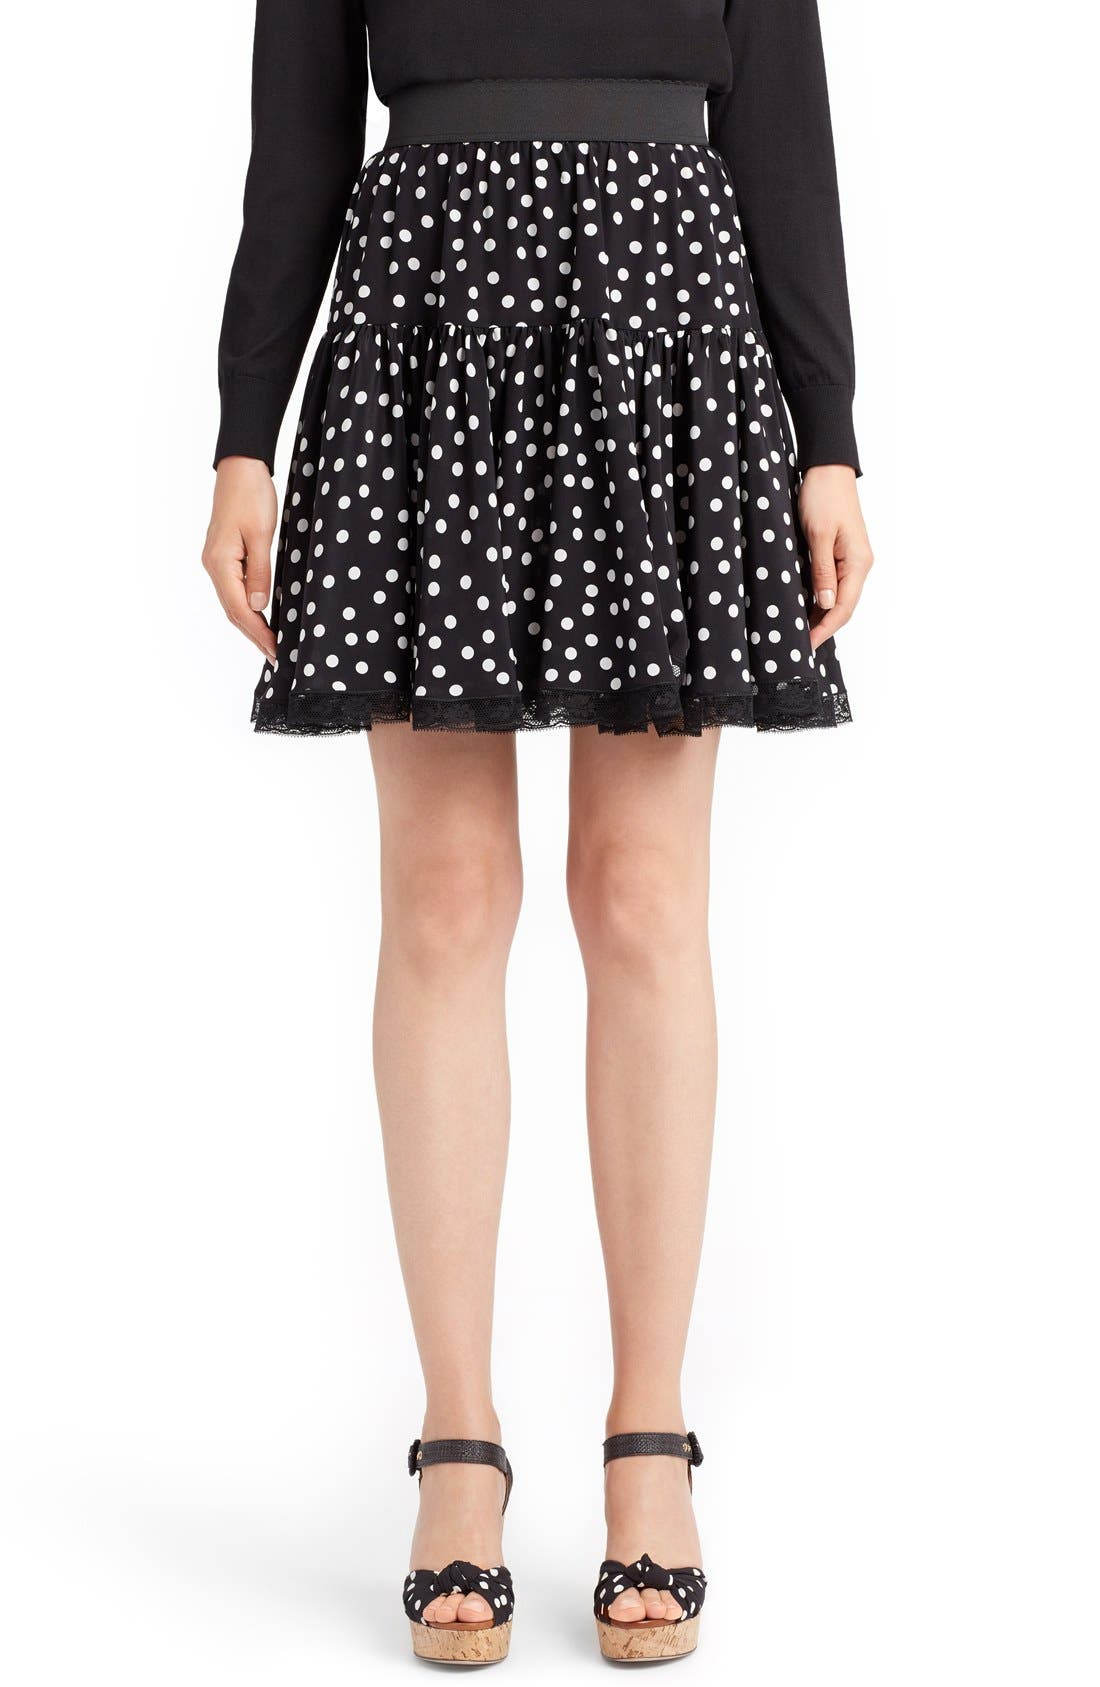 DOLCE&GABBANA Polka Dot Silk Skirt